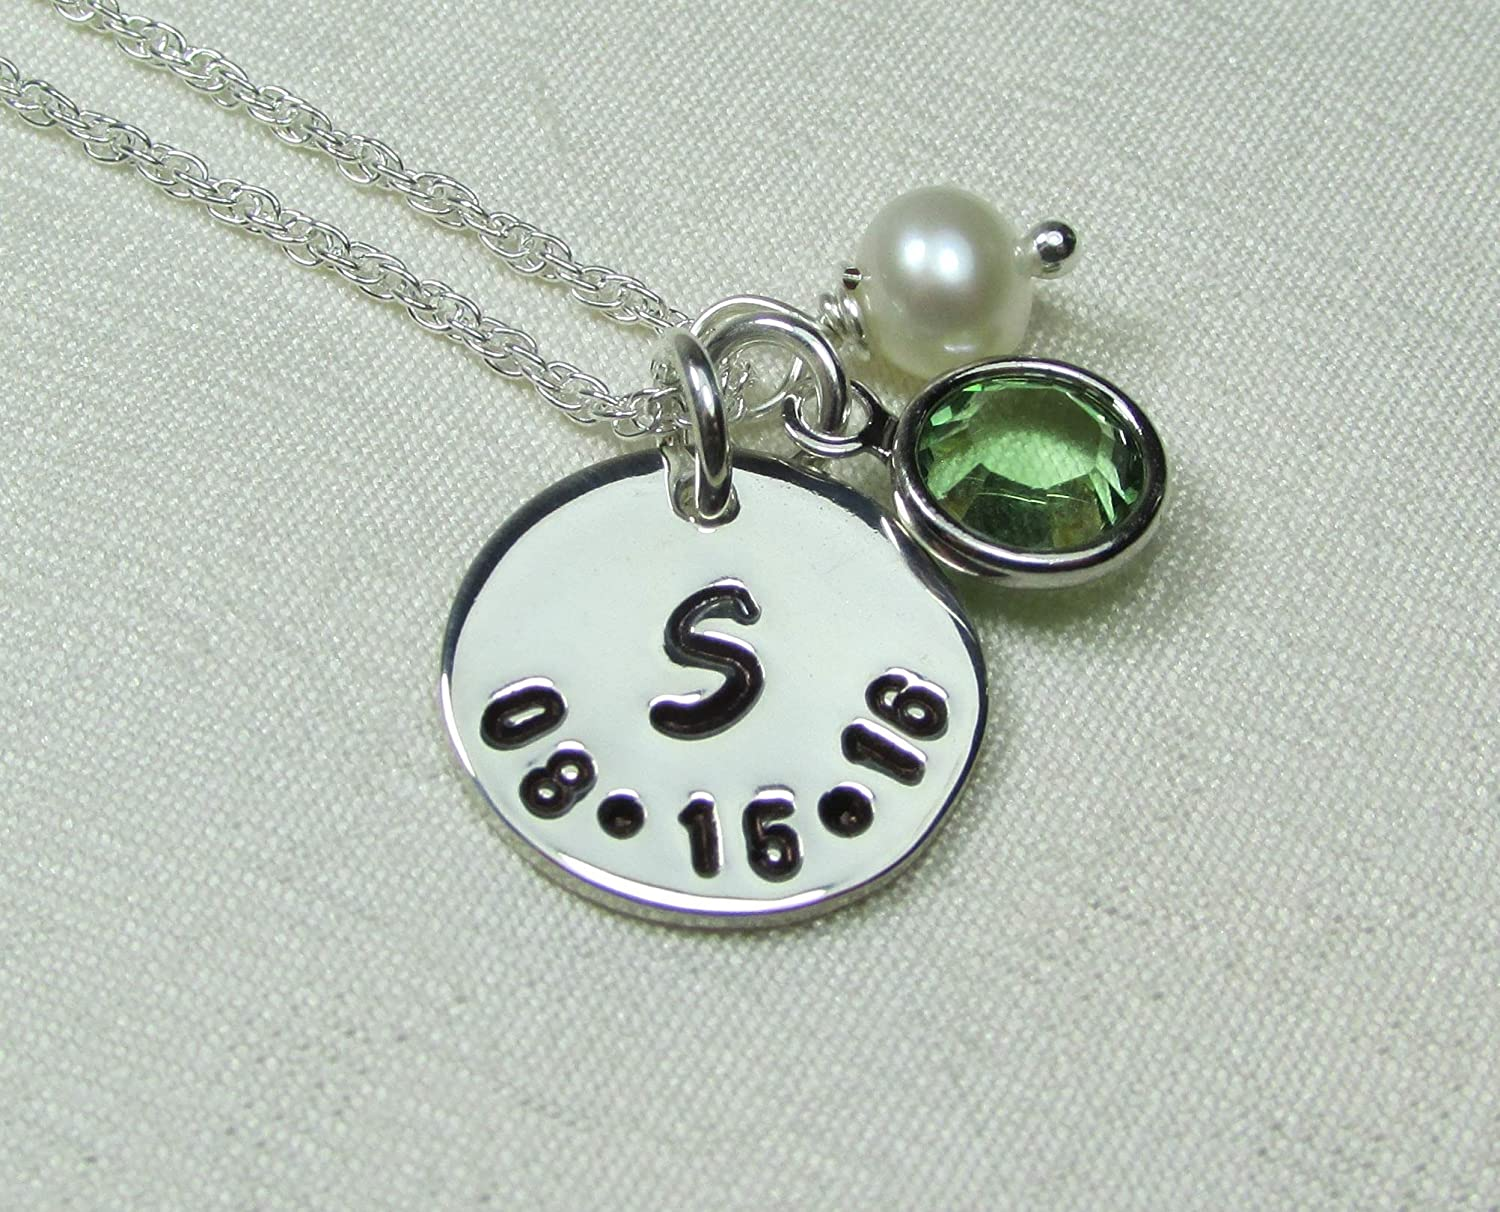 Personalized Necklace Sterling Silver Initial Necklace with Birthstone Necklace Mothers Necklace Personalized Jewelry Monogram Necklace